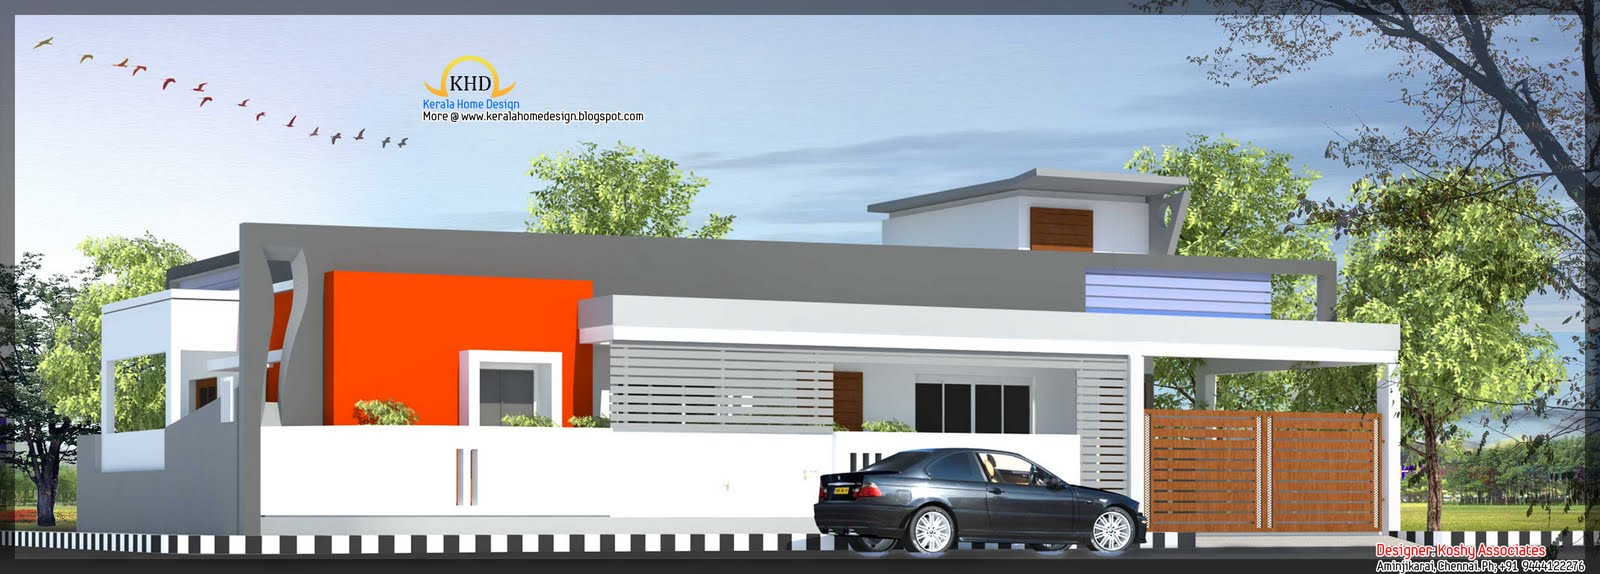 Single Floor Elevation Simple : Simple house design with plan elevation and section joy